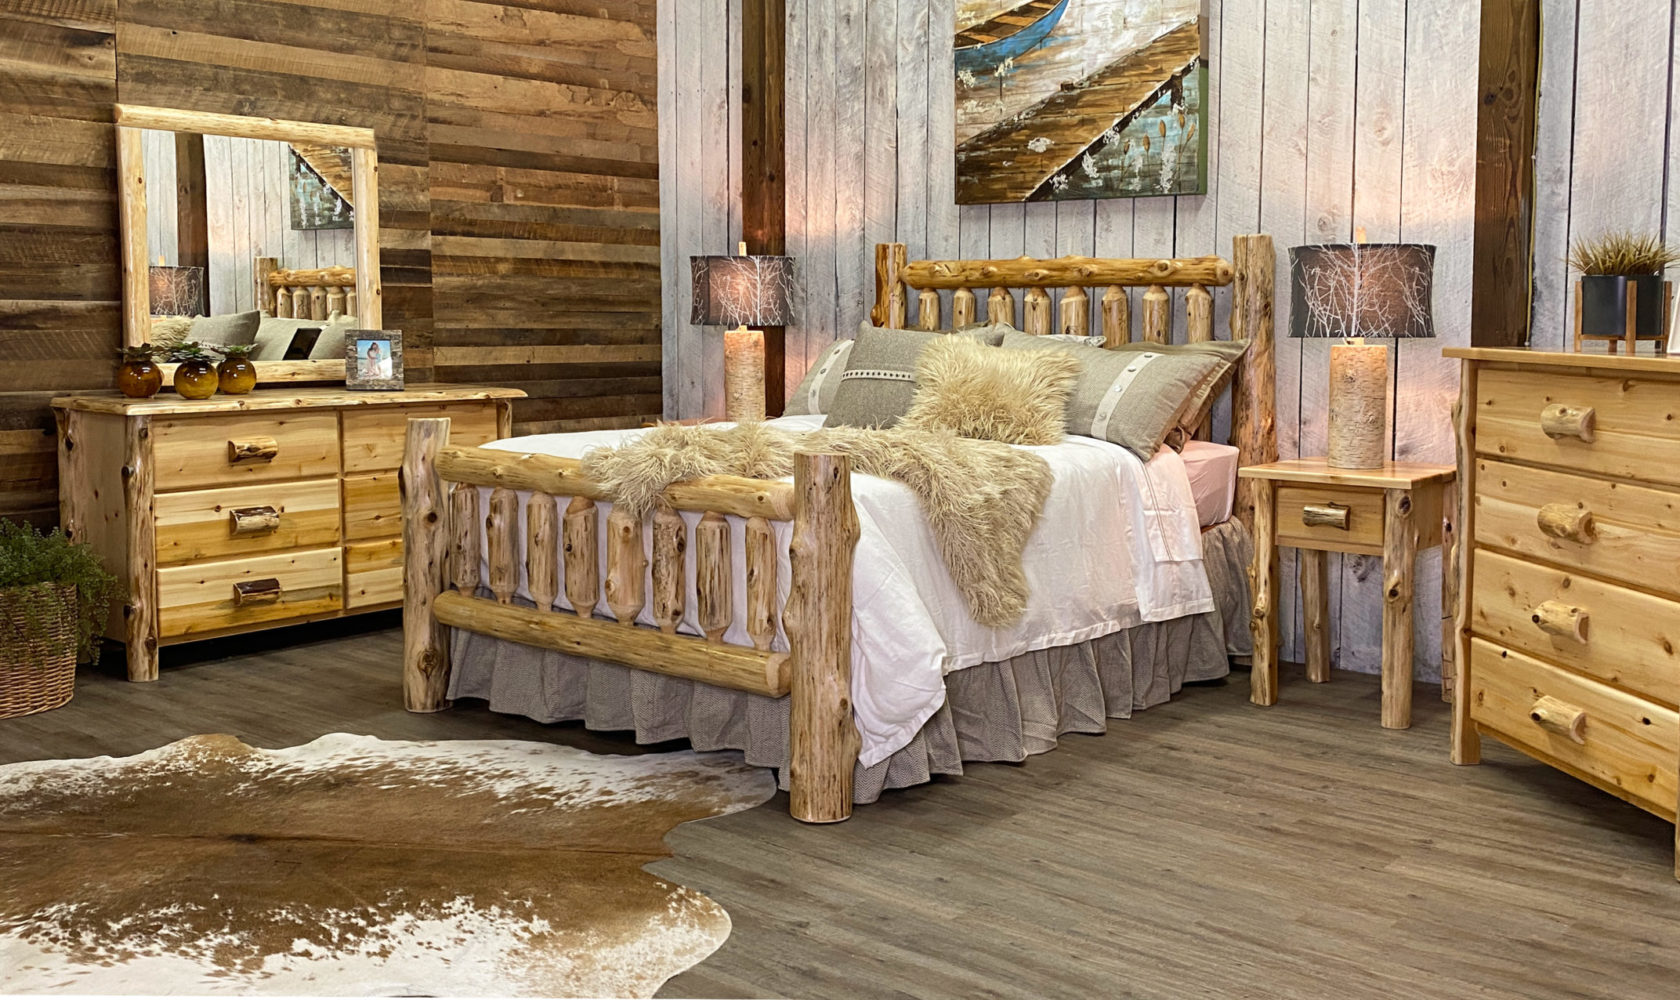 a beautiful, rustic room comprised of a variety of log furniture